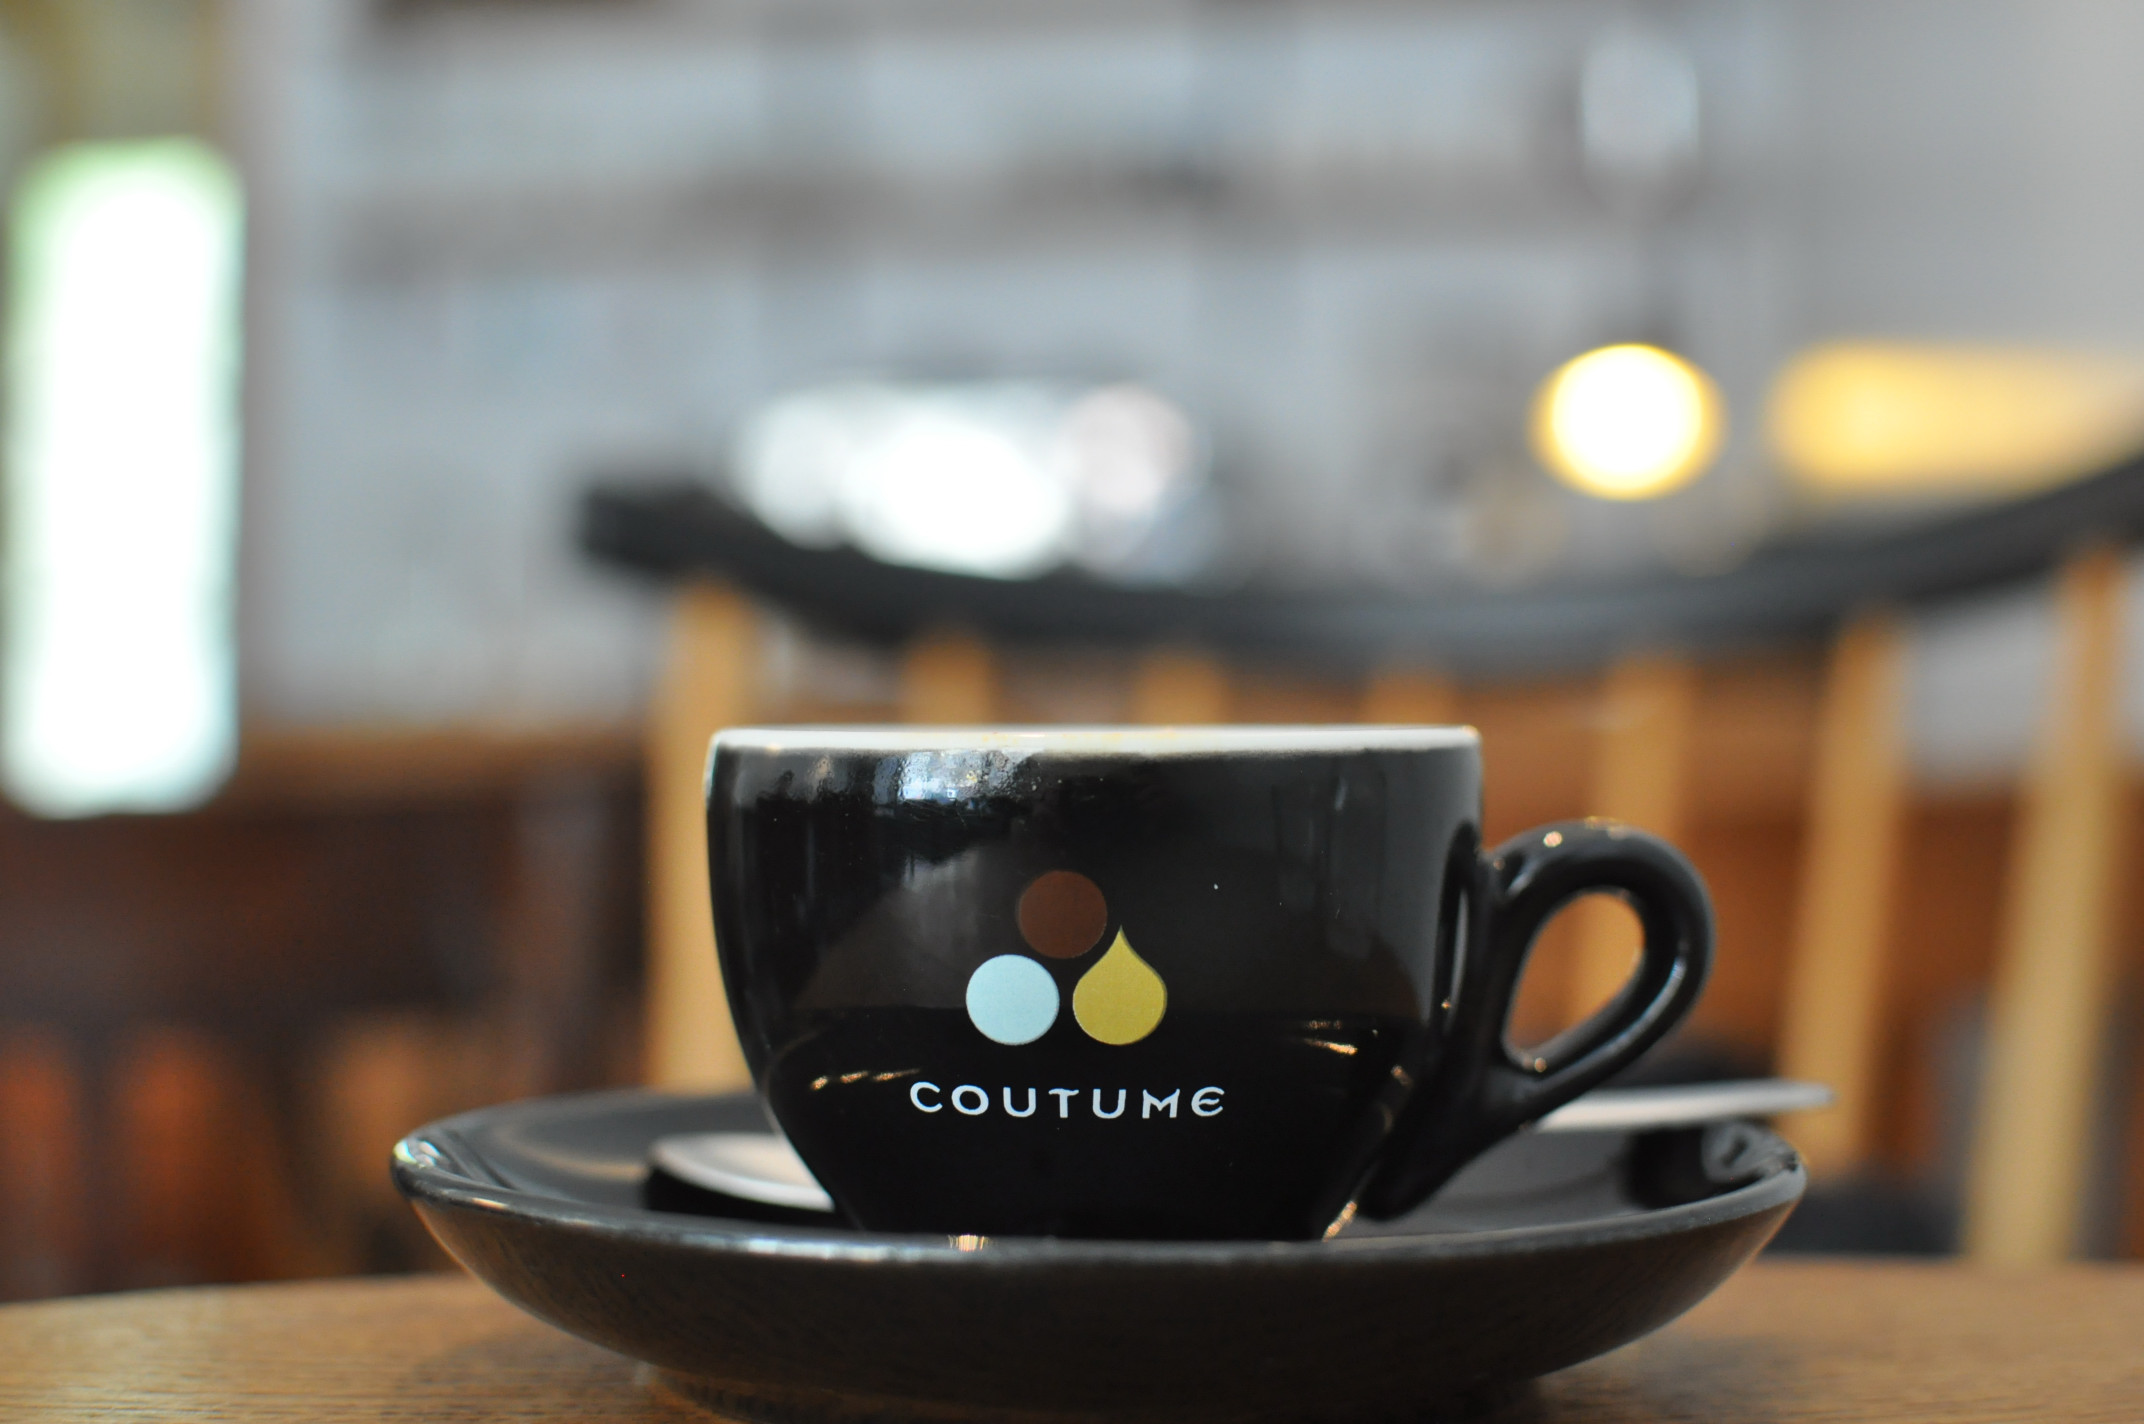 Black Market, proudly serving coffee from Parisian roasters, Coutume.